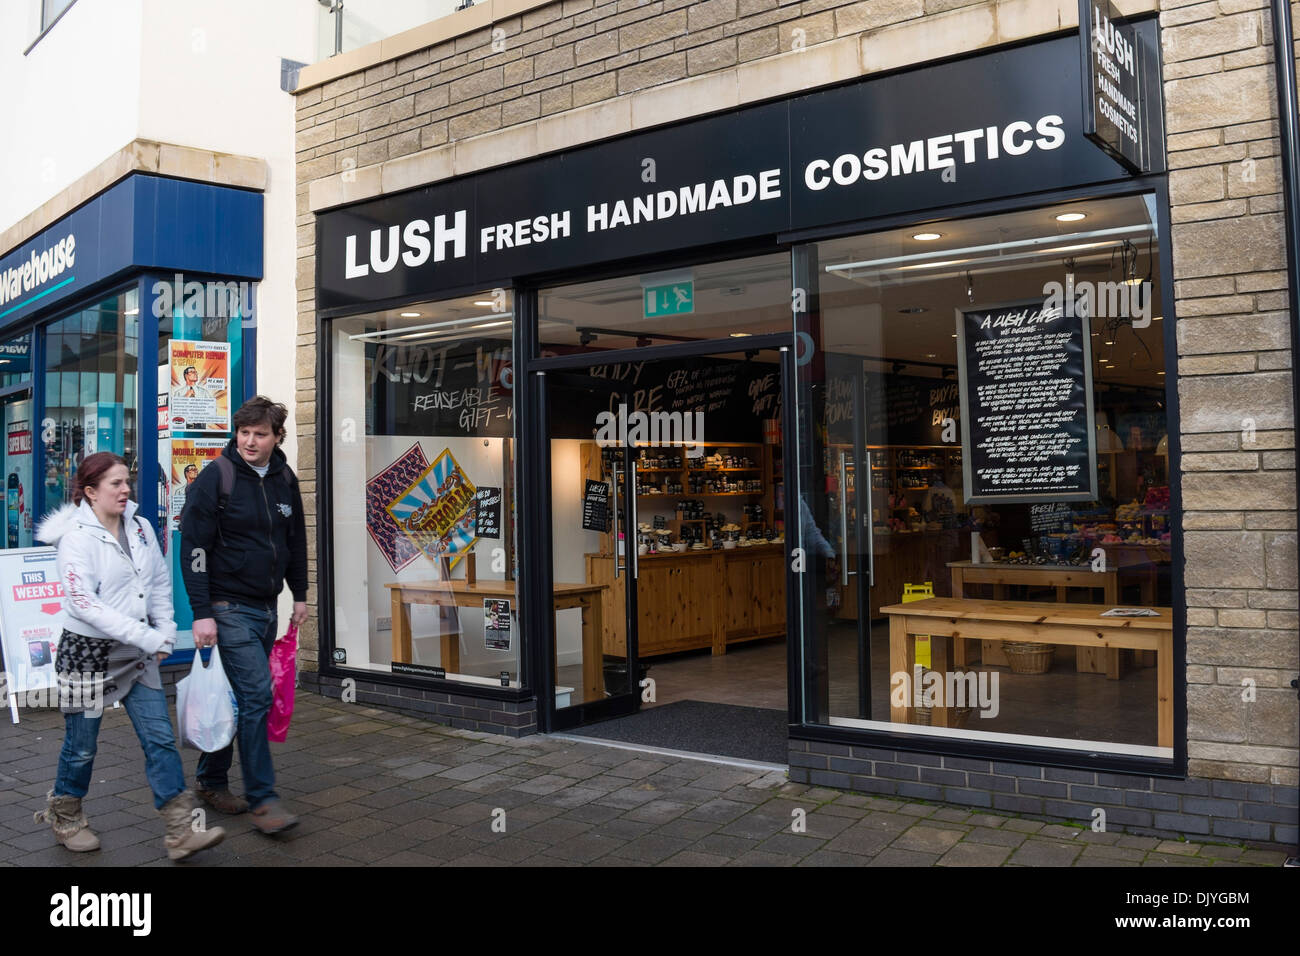 Lush Vapes offers a large variety of Vaporizers, e-liquids, accessories in a friendly, welcoming atmosphere. New or experience vapors, we are here to help! Lush Vapes offers a large variety of Vaporizers, e-liquids, accessories in a friendly, welcoming atmosphere.